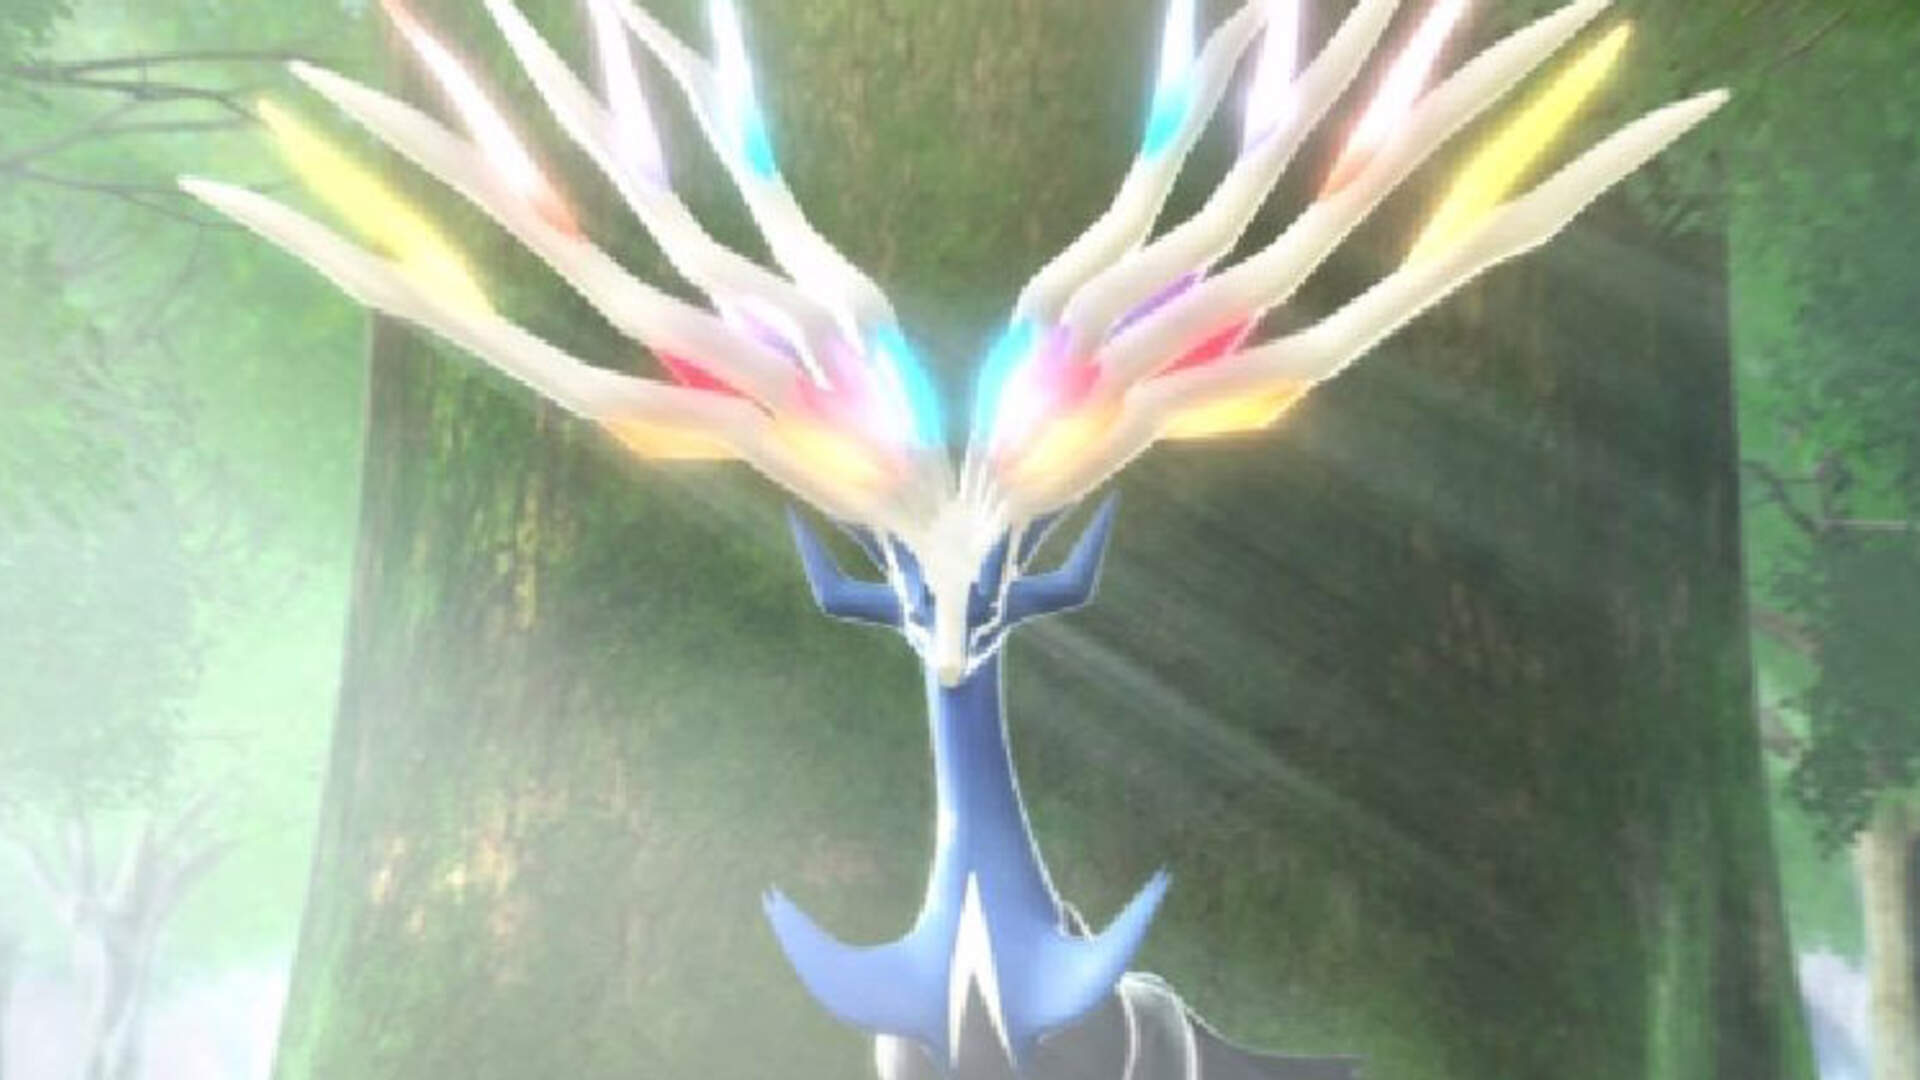 For Better or Worse, Pokemon X/Y is Unabashedly Pokemon